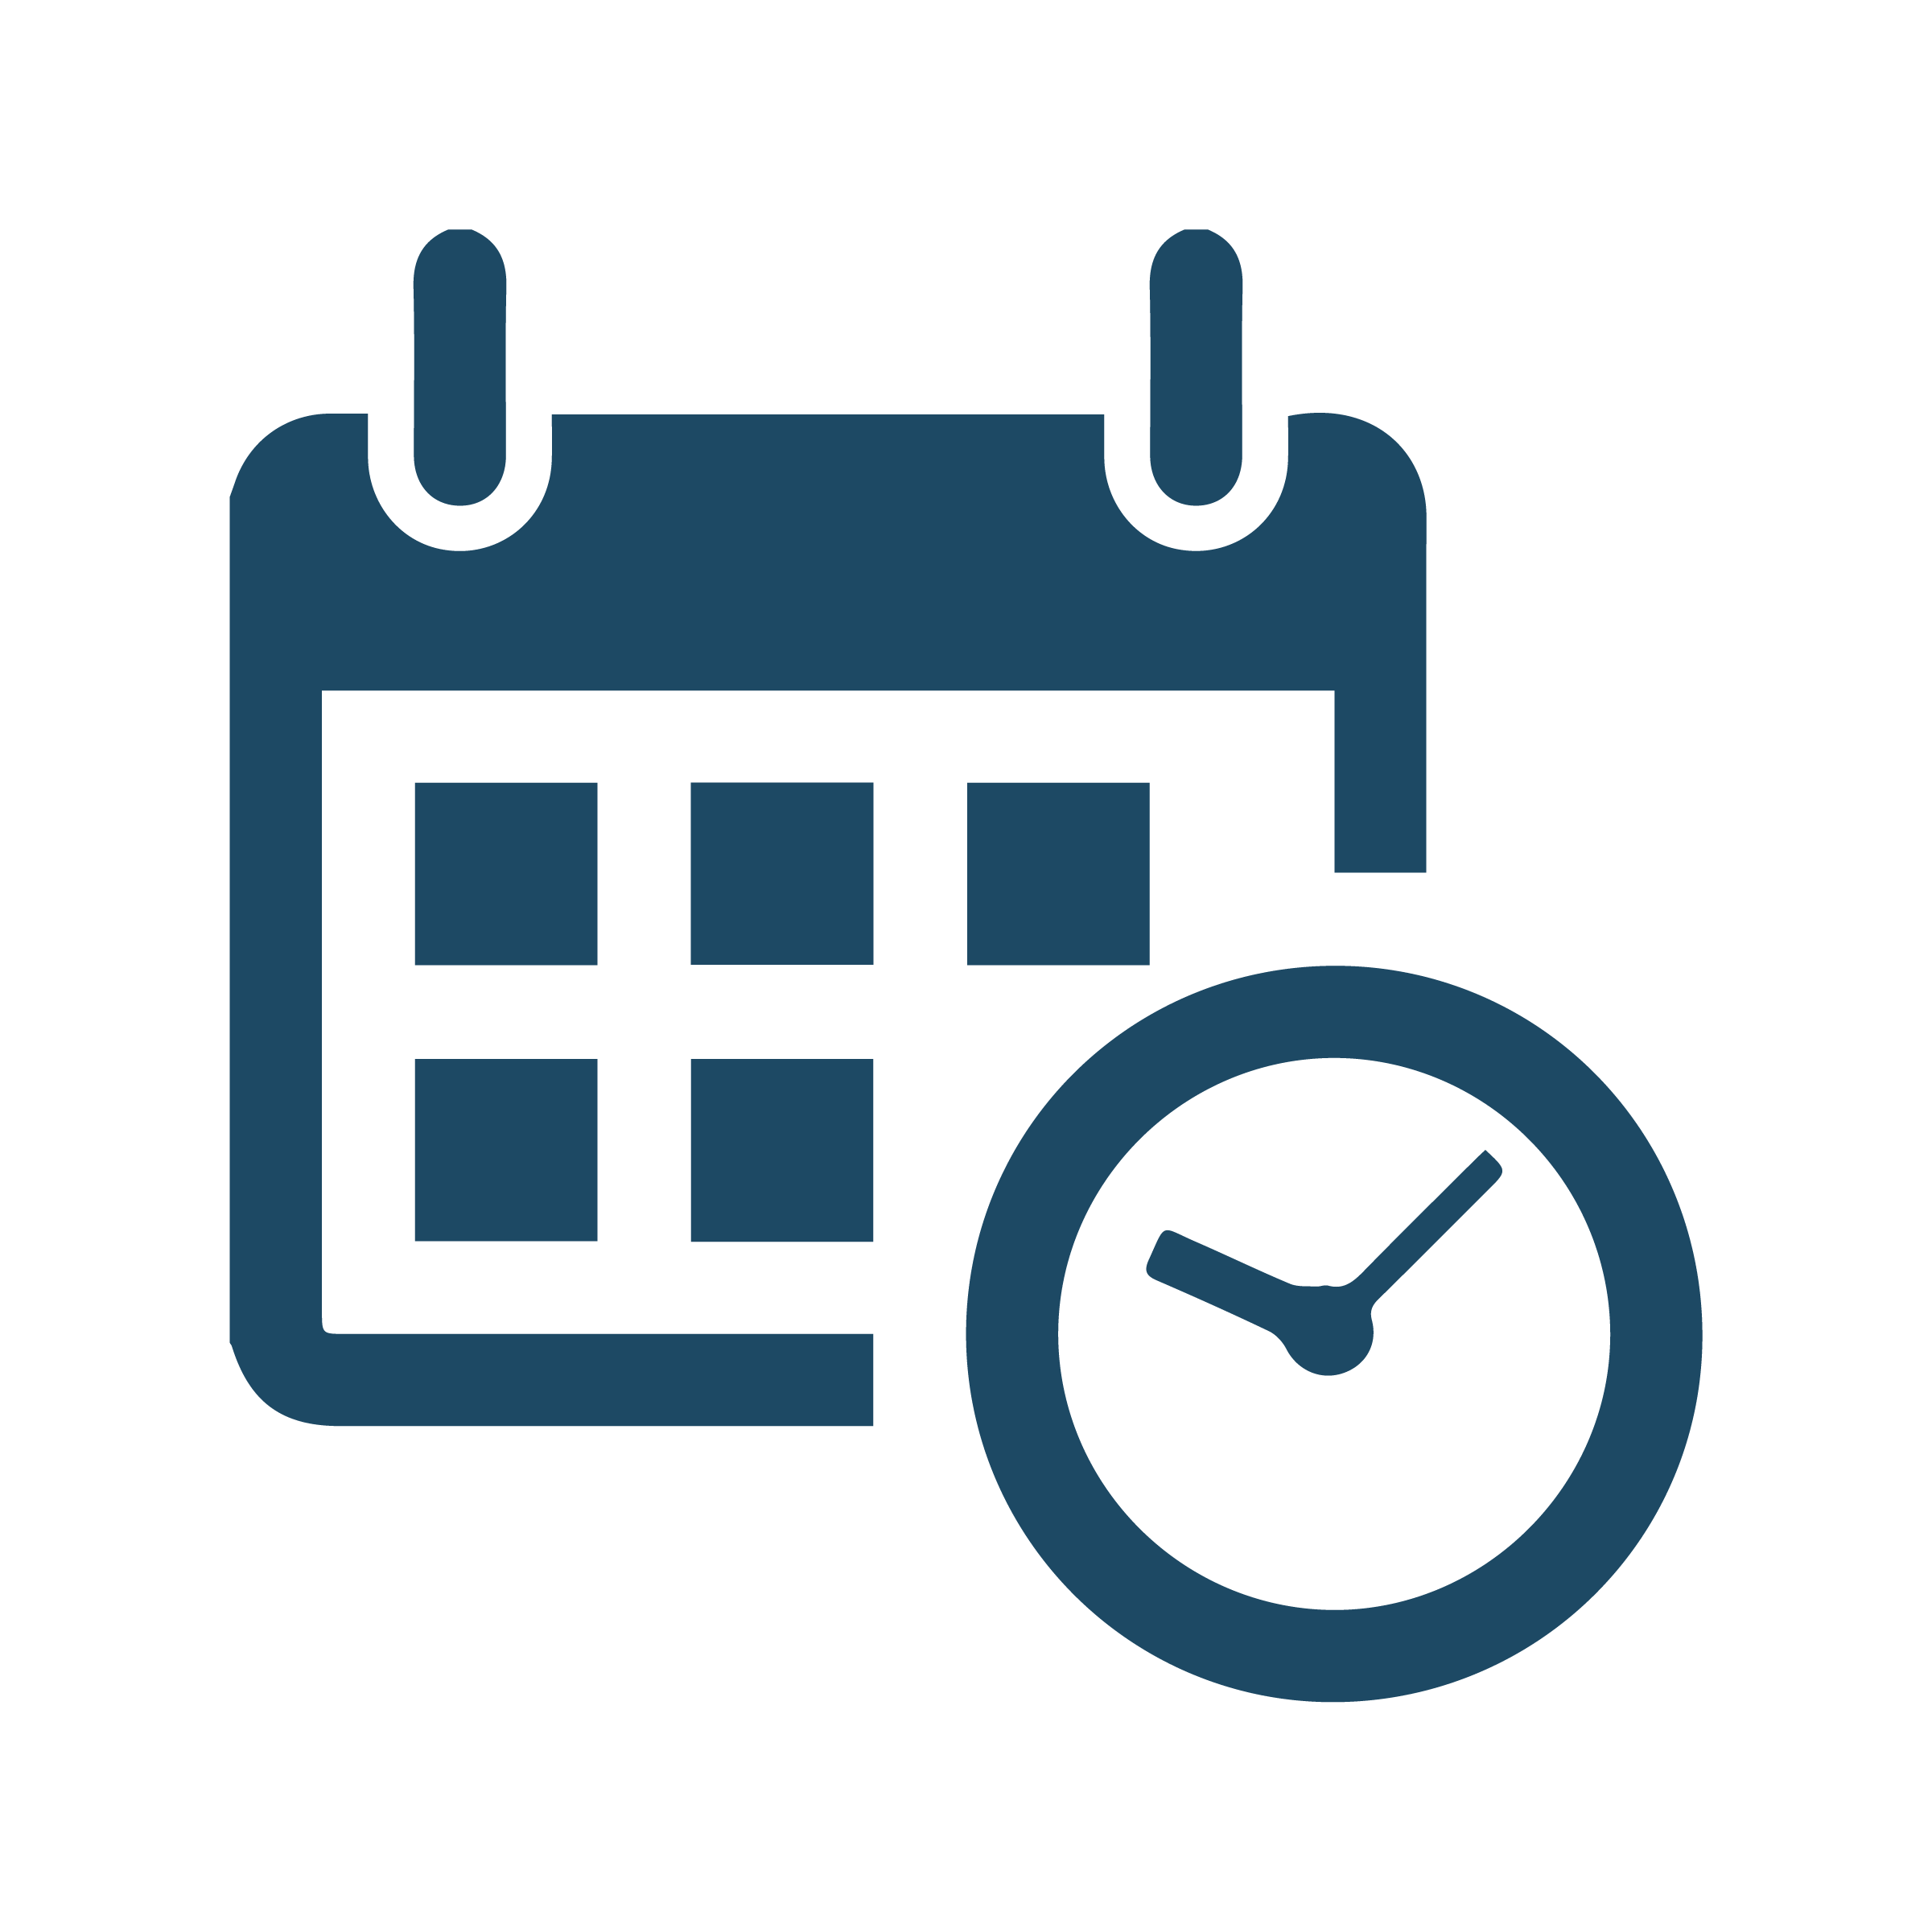 Appointment Reminder or Scheduler_Appointment Reminder or Scheduler